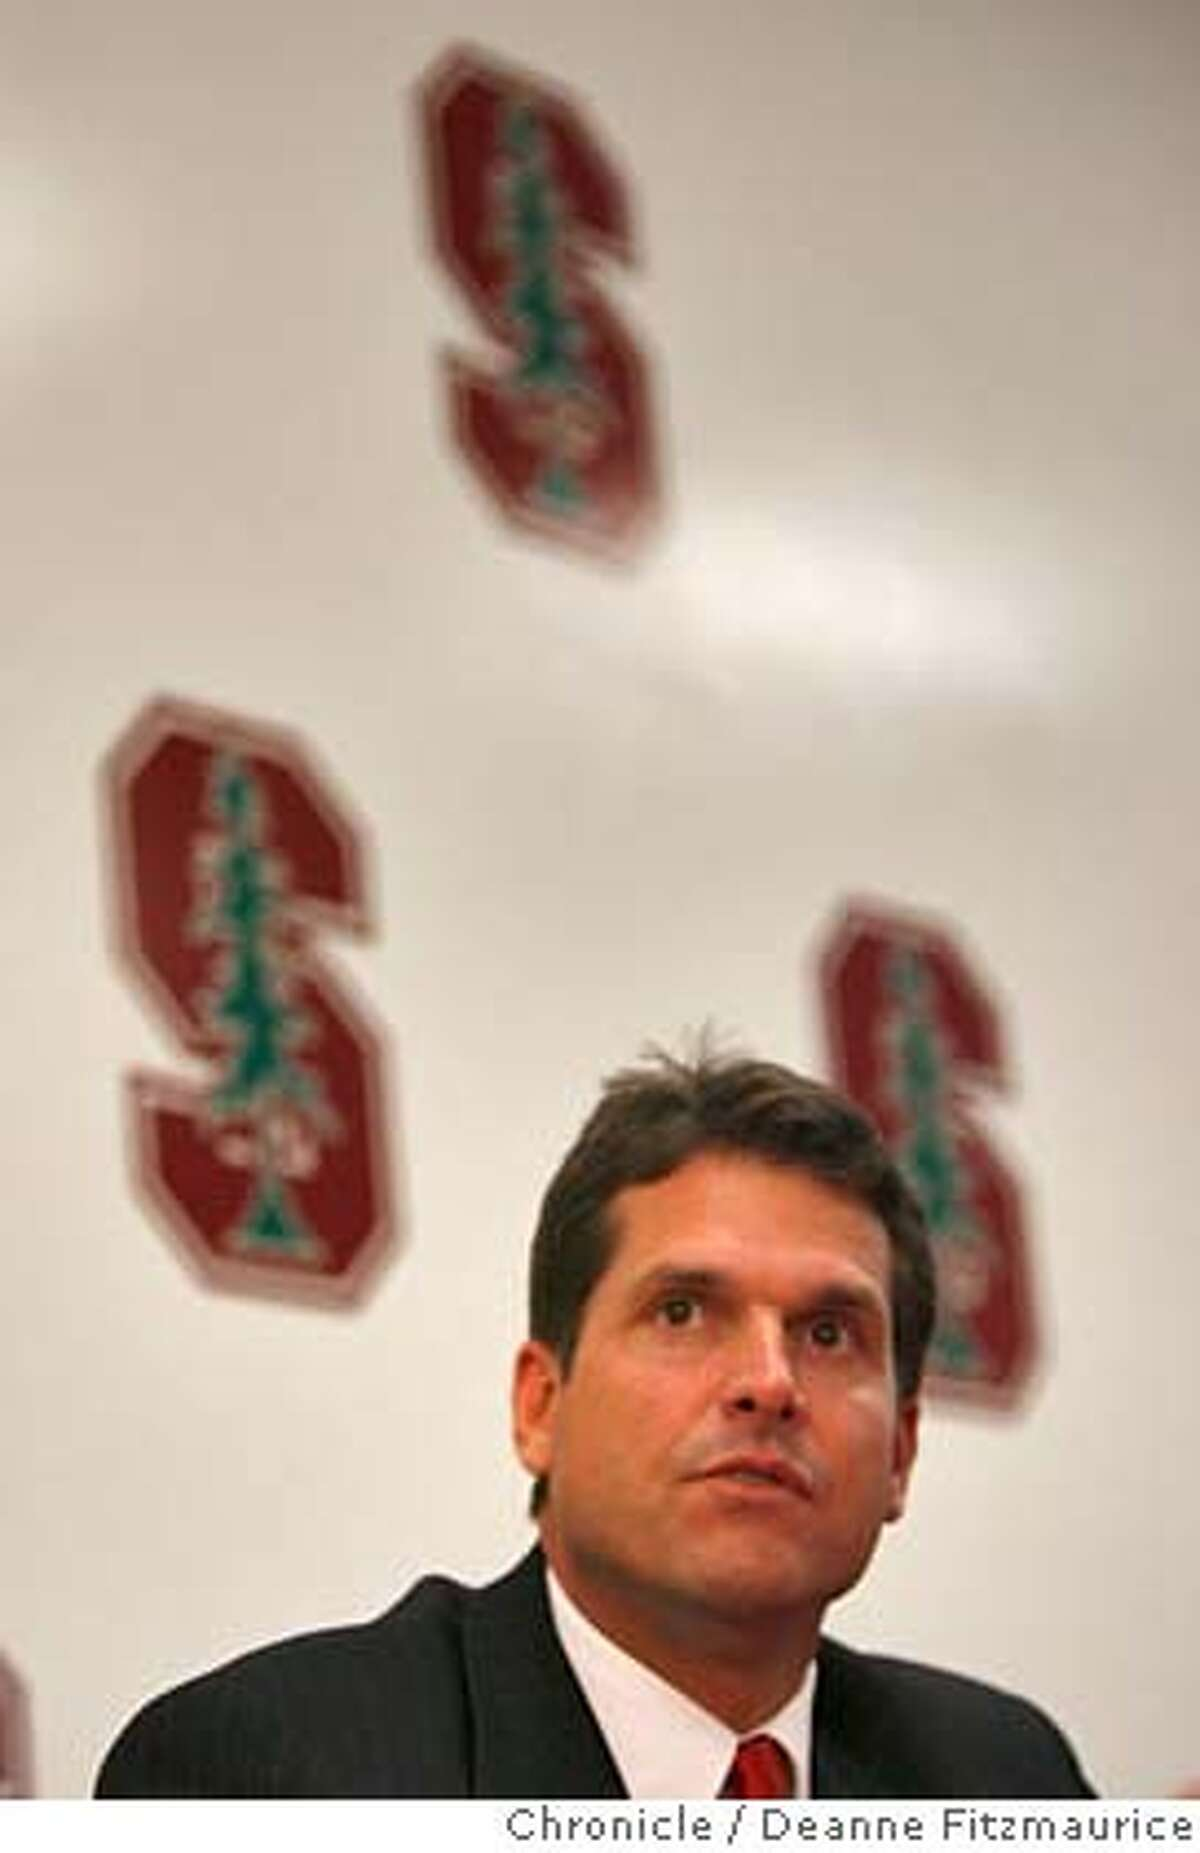 stanfordfootball_0082_df.jpg Jim Harbaugh is introduced at a press conference as head coach for Stanford football. Photographed in Palo Alto on 12/19/06. (Deanne Fitzmaurice/ The Chronicle) Mandatory credit for photographer and San Francisco Chronicle. /Magazines out.